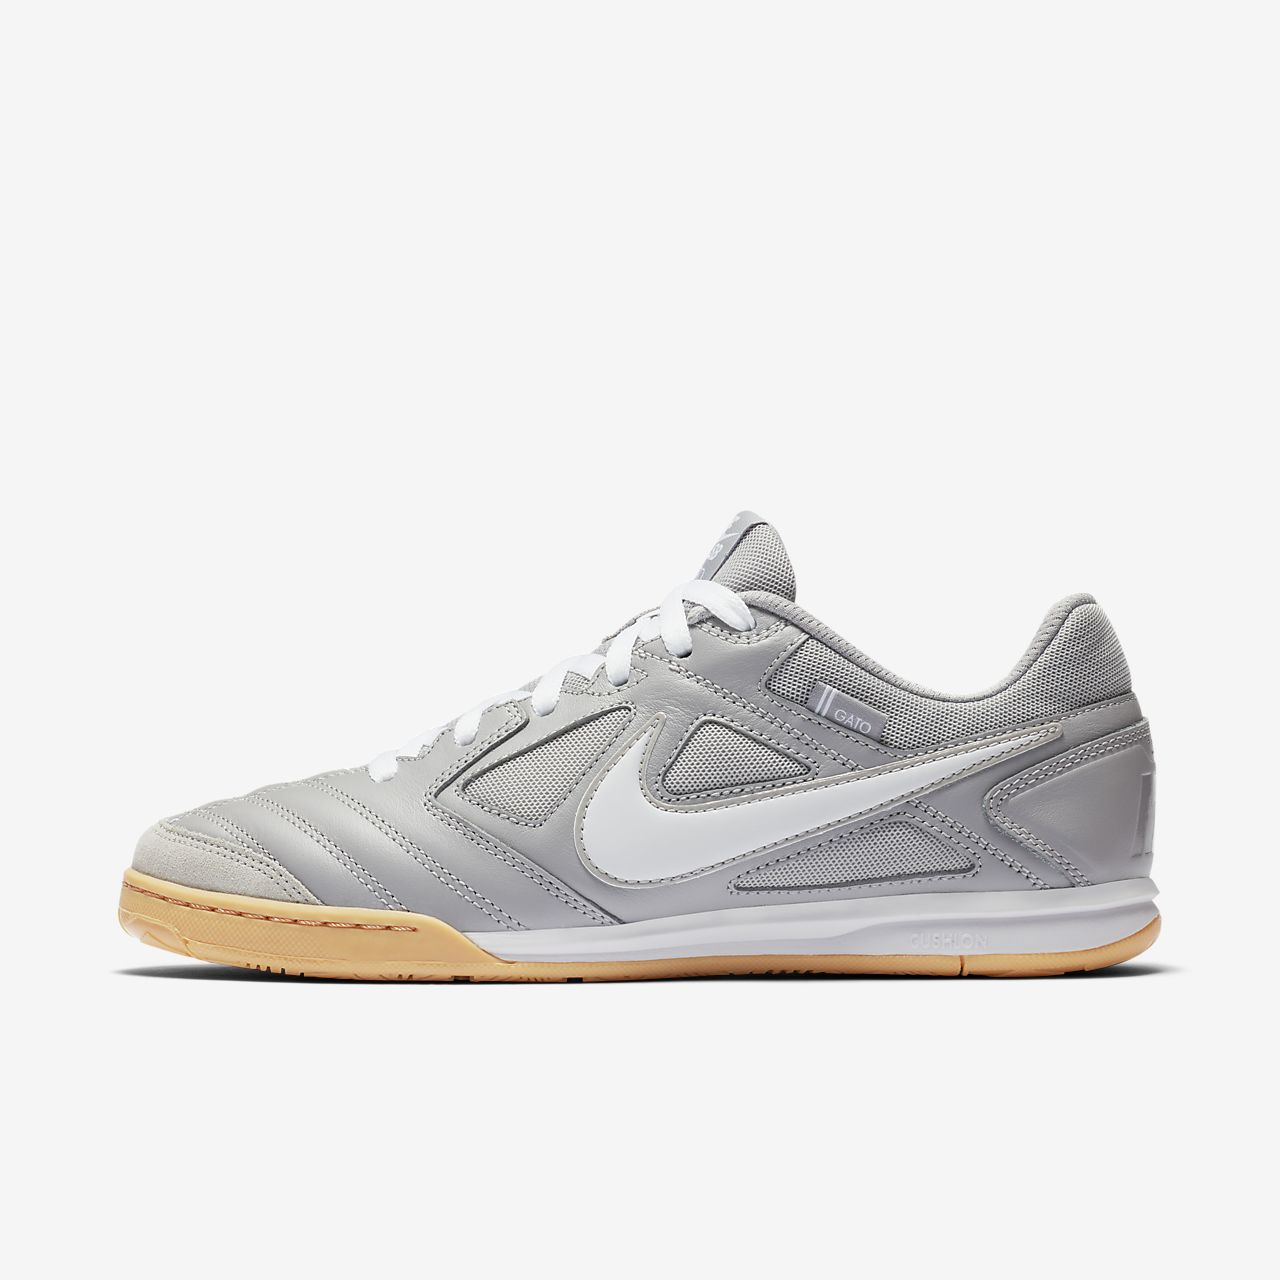 online store c6681 a30a6 Low Resolution Nike SB Gato Skate Shoe Nike SB Gato Skate Shoe